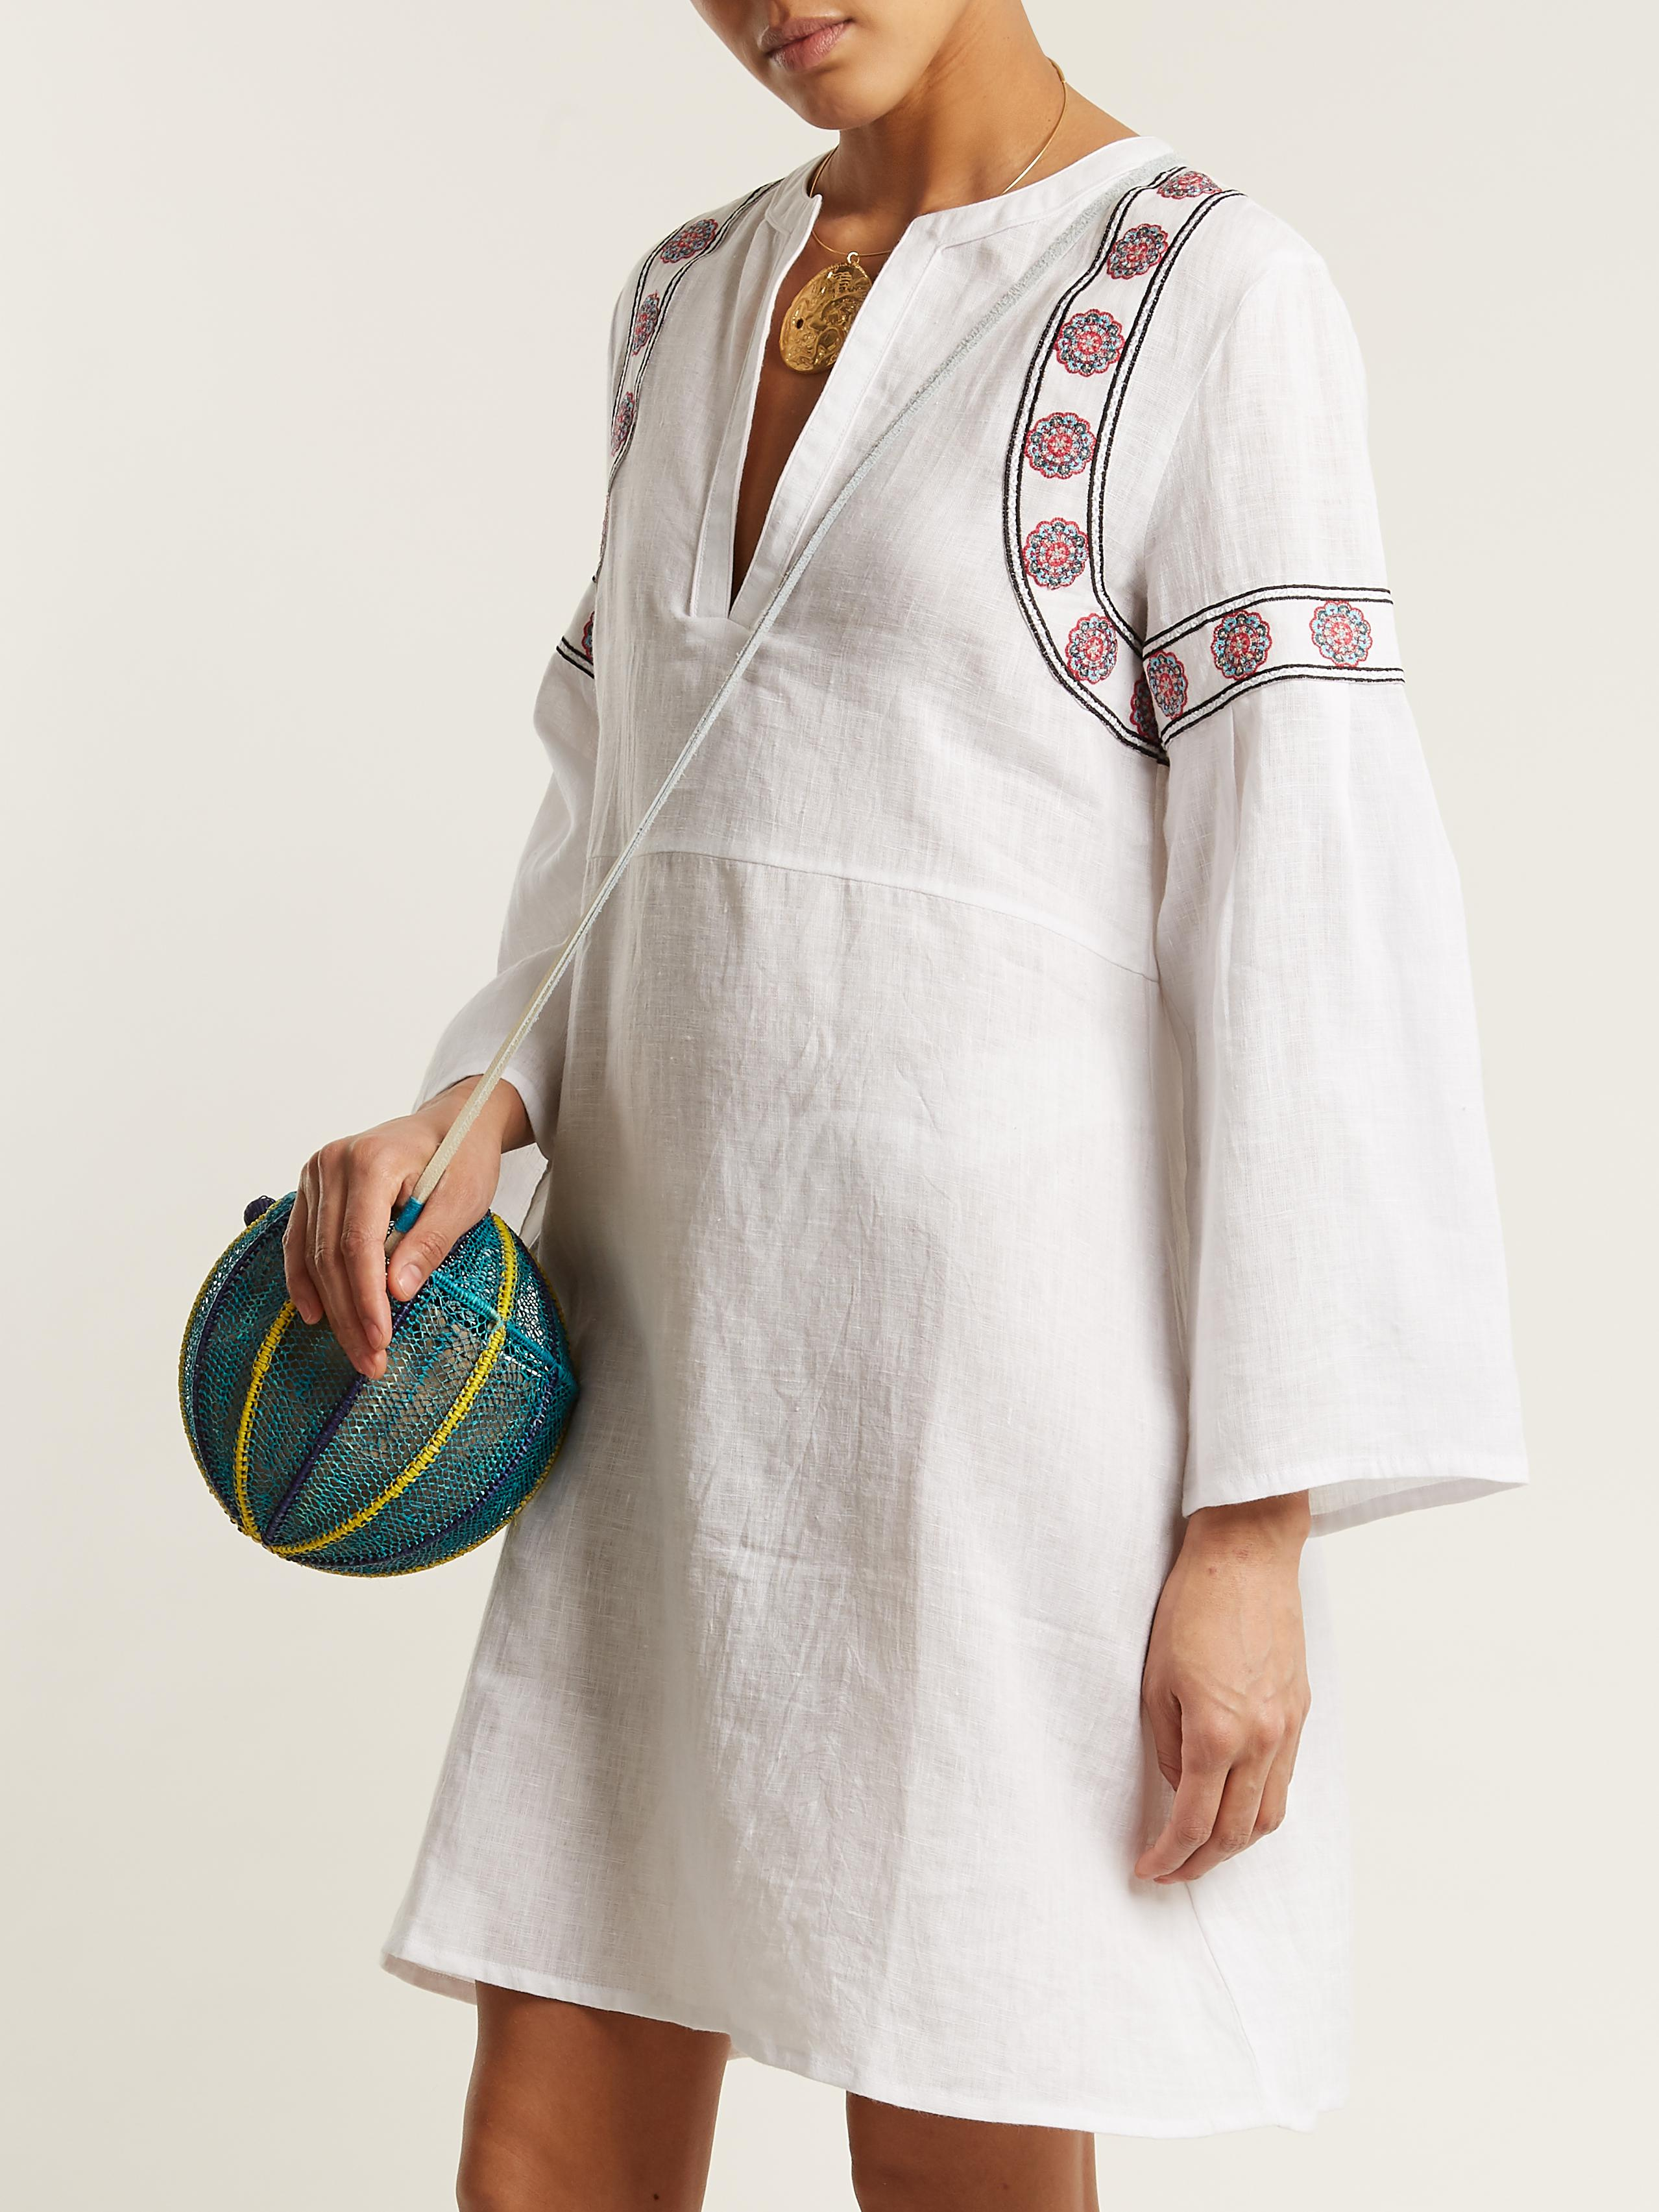 Clearance View Pantelleria embroidered-linen kaftan Daft Outlet Affordable Sale 2018 New rsKwBNjG